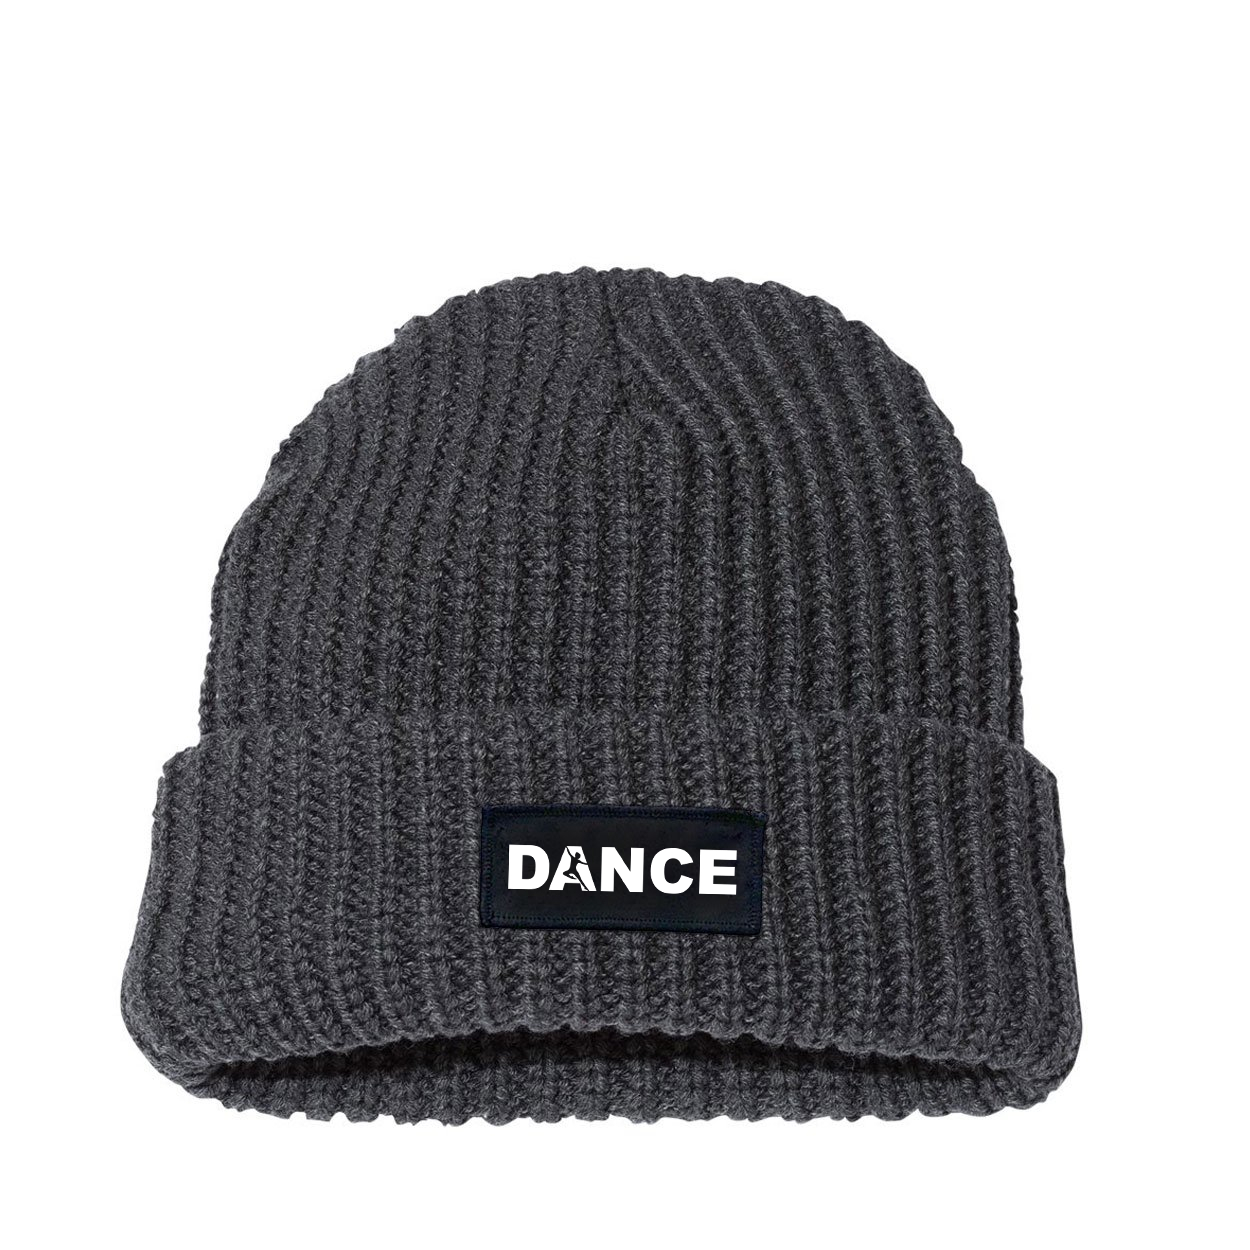 Dance Silhouette Logo Night Out Woven Patch Roll Up Jumbo Chunky Knit Beanie Charcoal (White Logo)